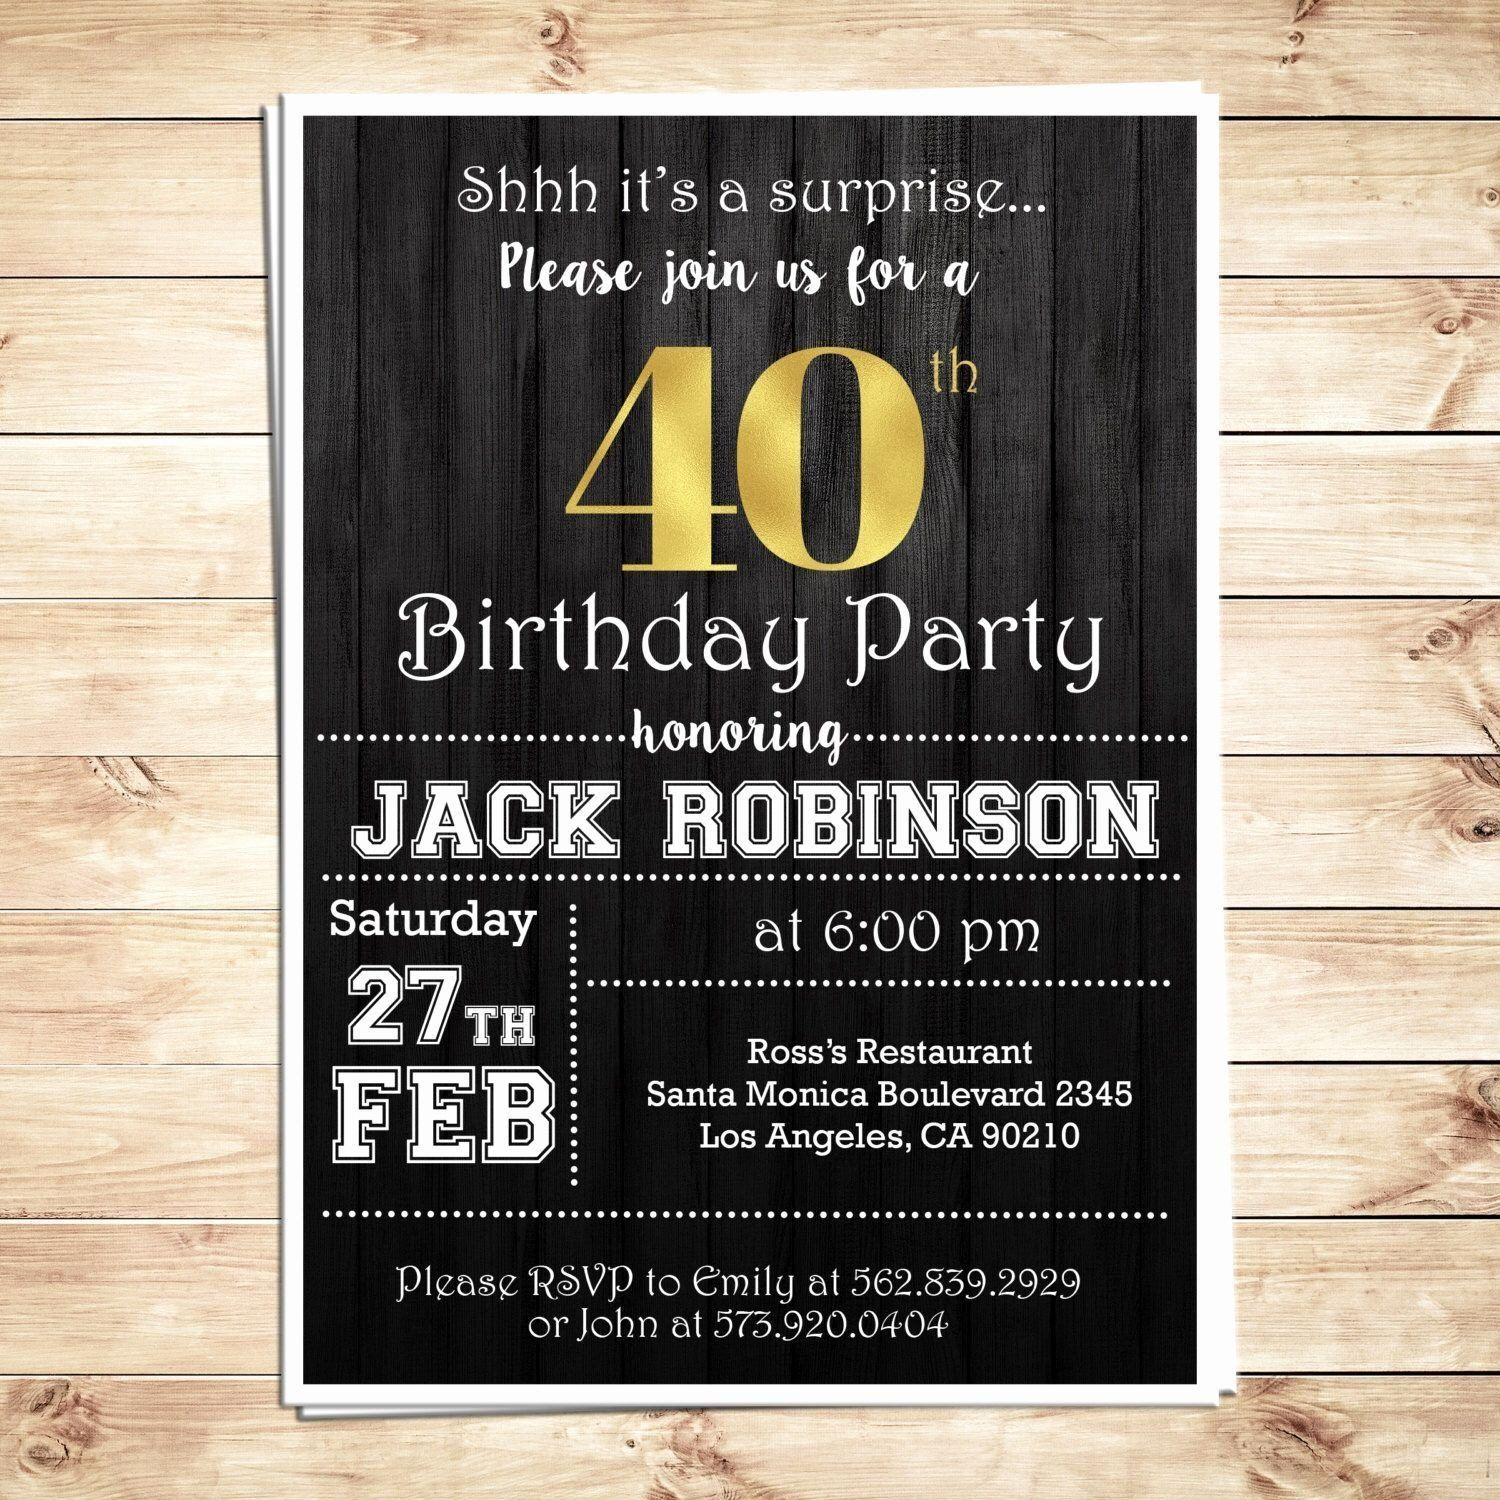 Blank 70th Birthday Invitation Template